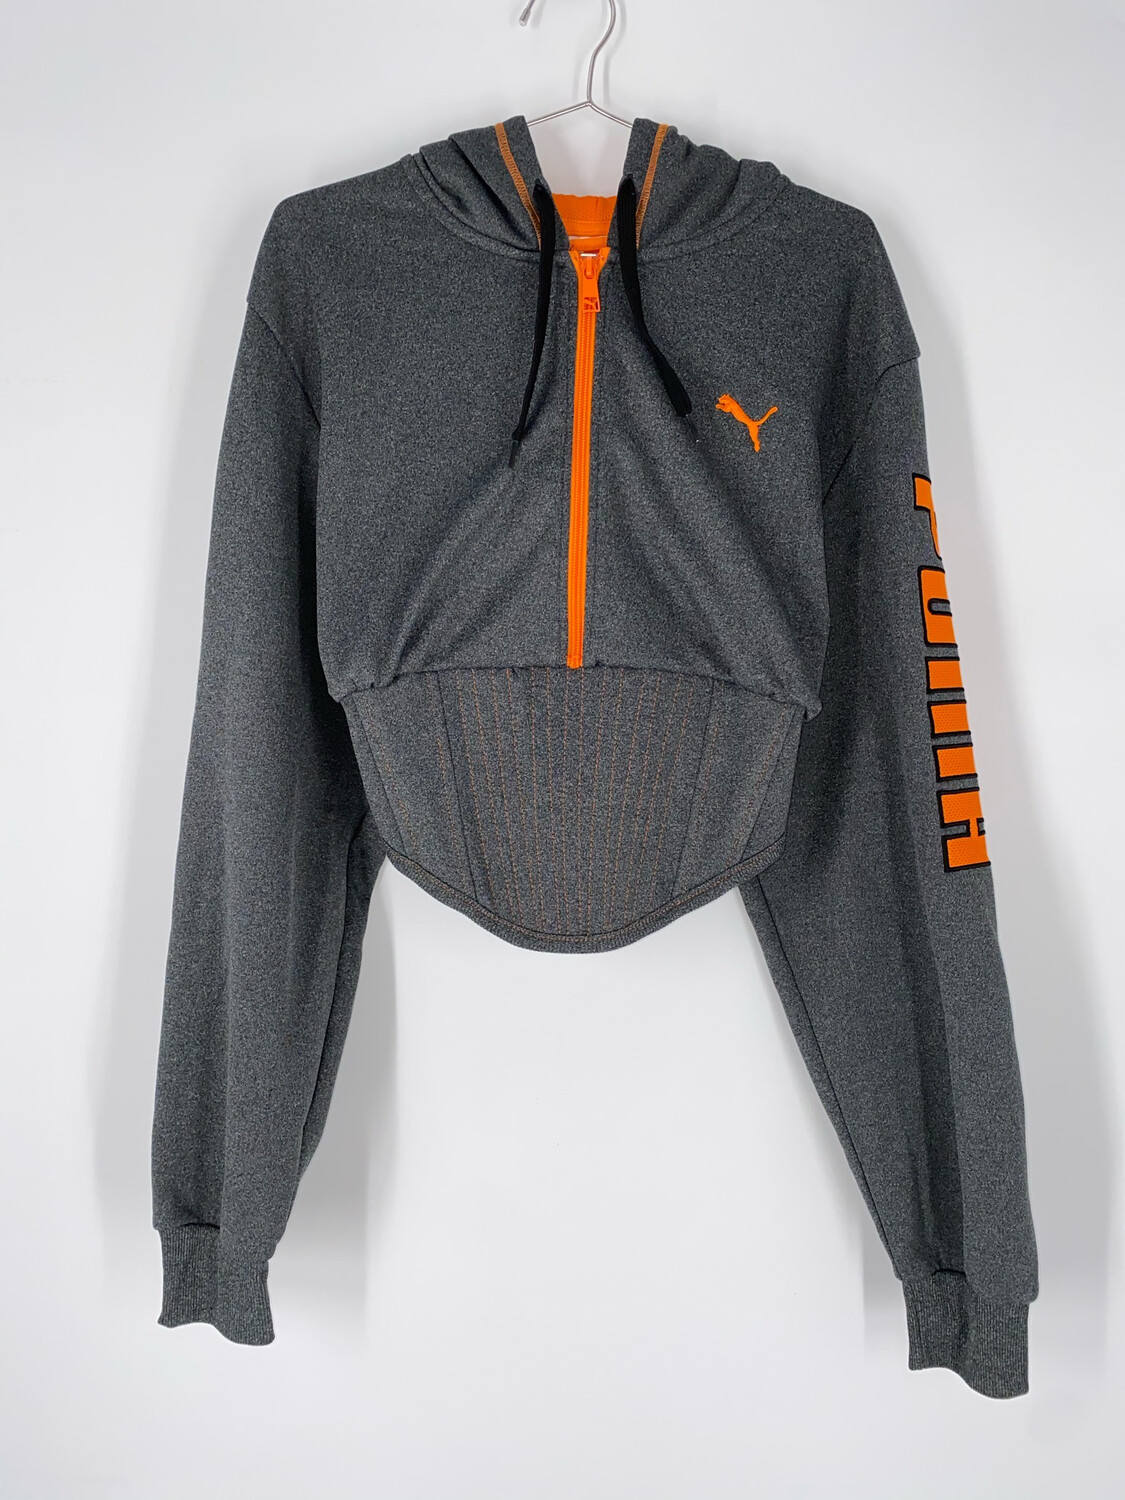 Orange/Grey Puma Reworked Sweatshirt Corset